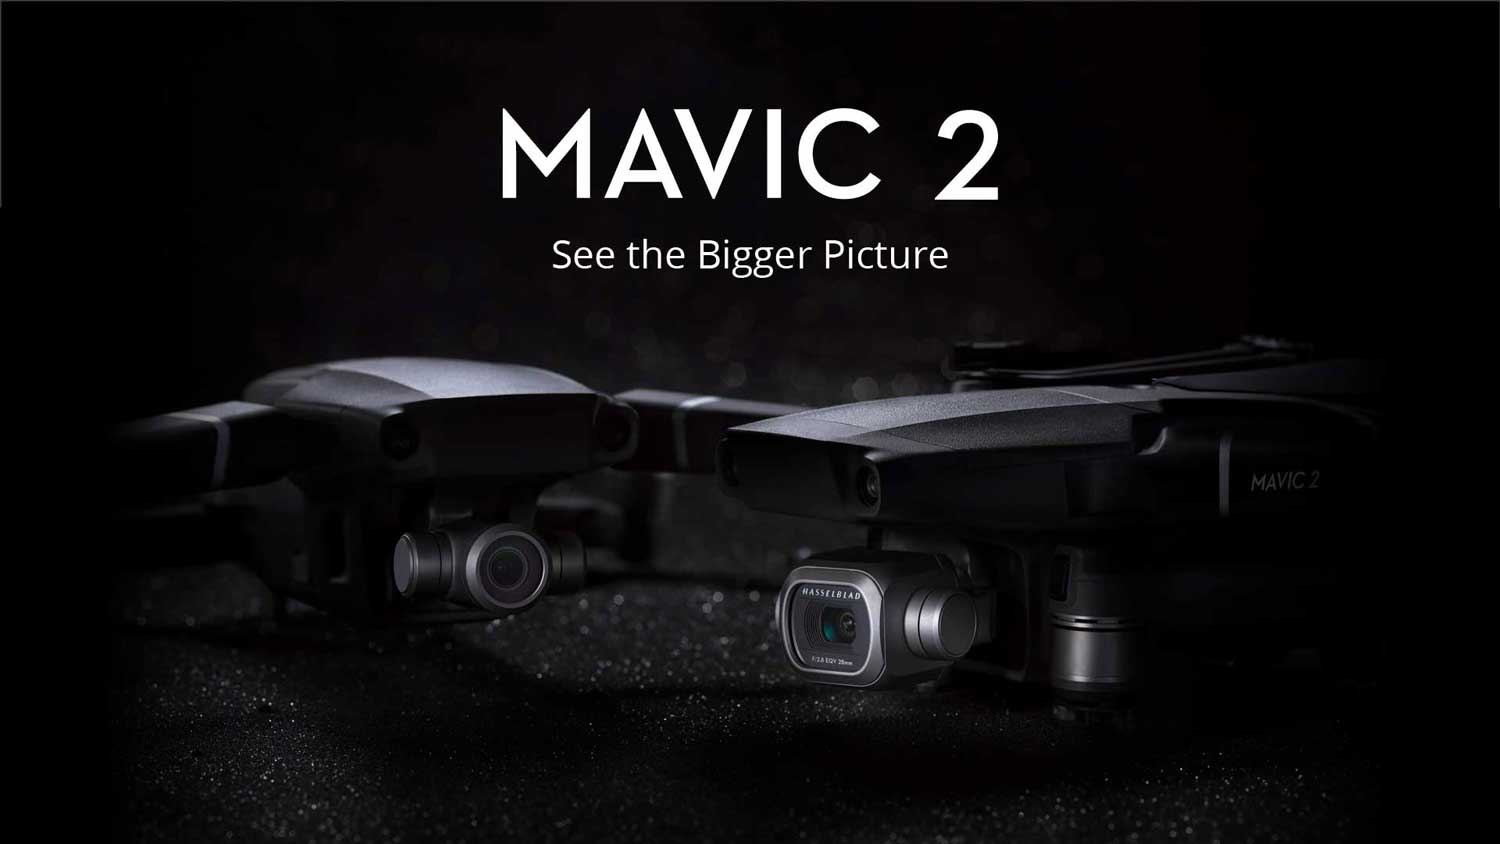 DJI Mavic 2 See the Bigger Picture